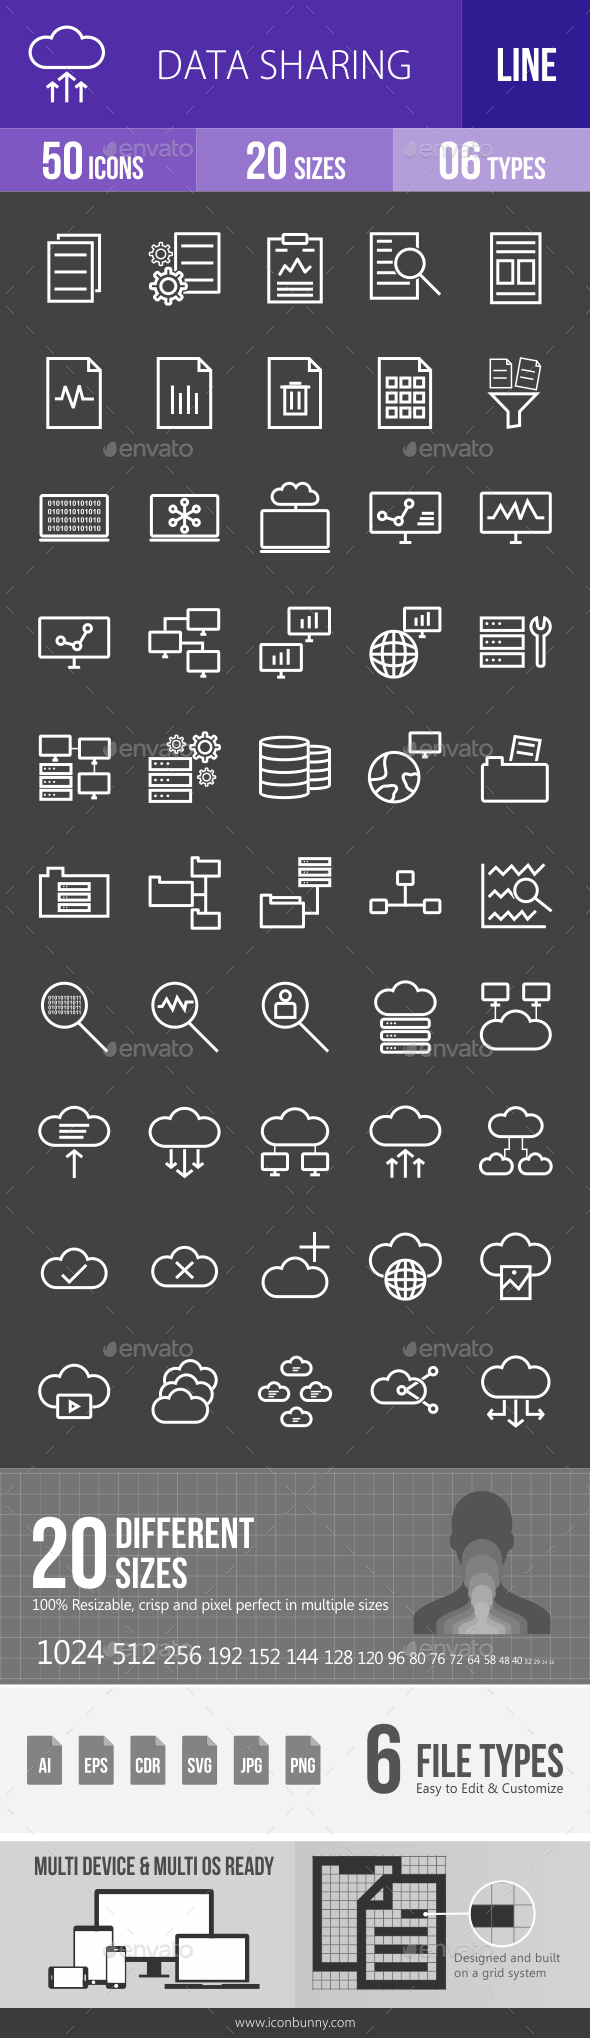 Data Sharing Line Inverted Icons - Icons